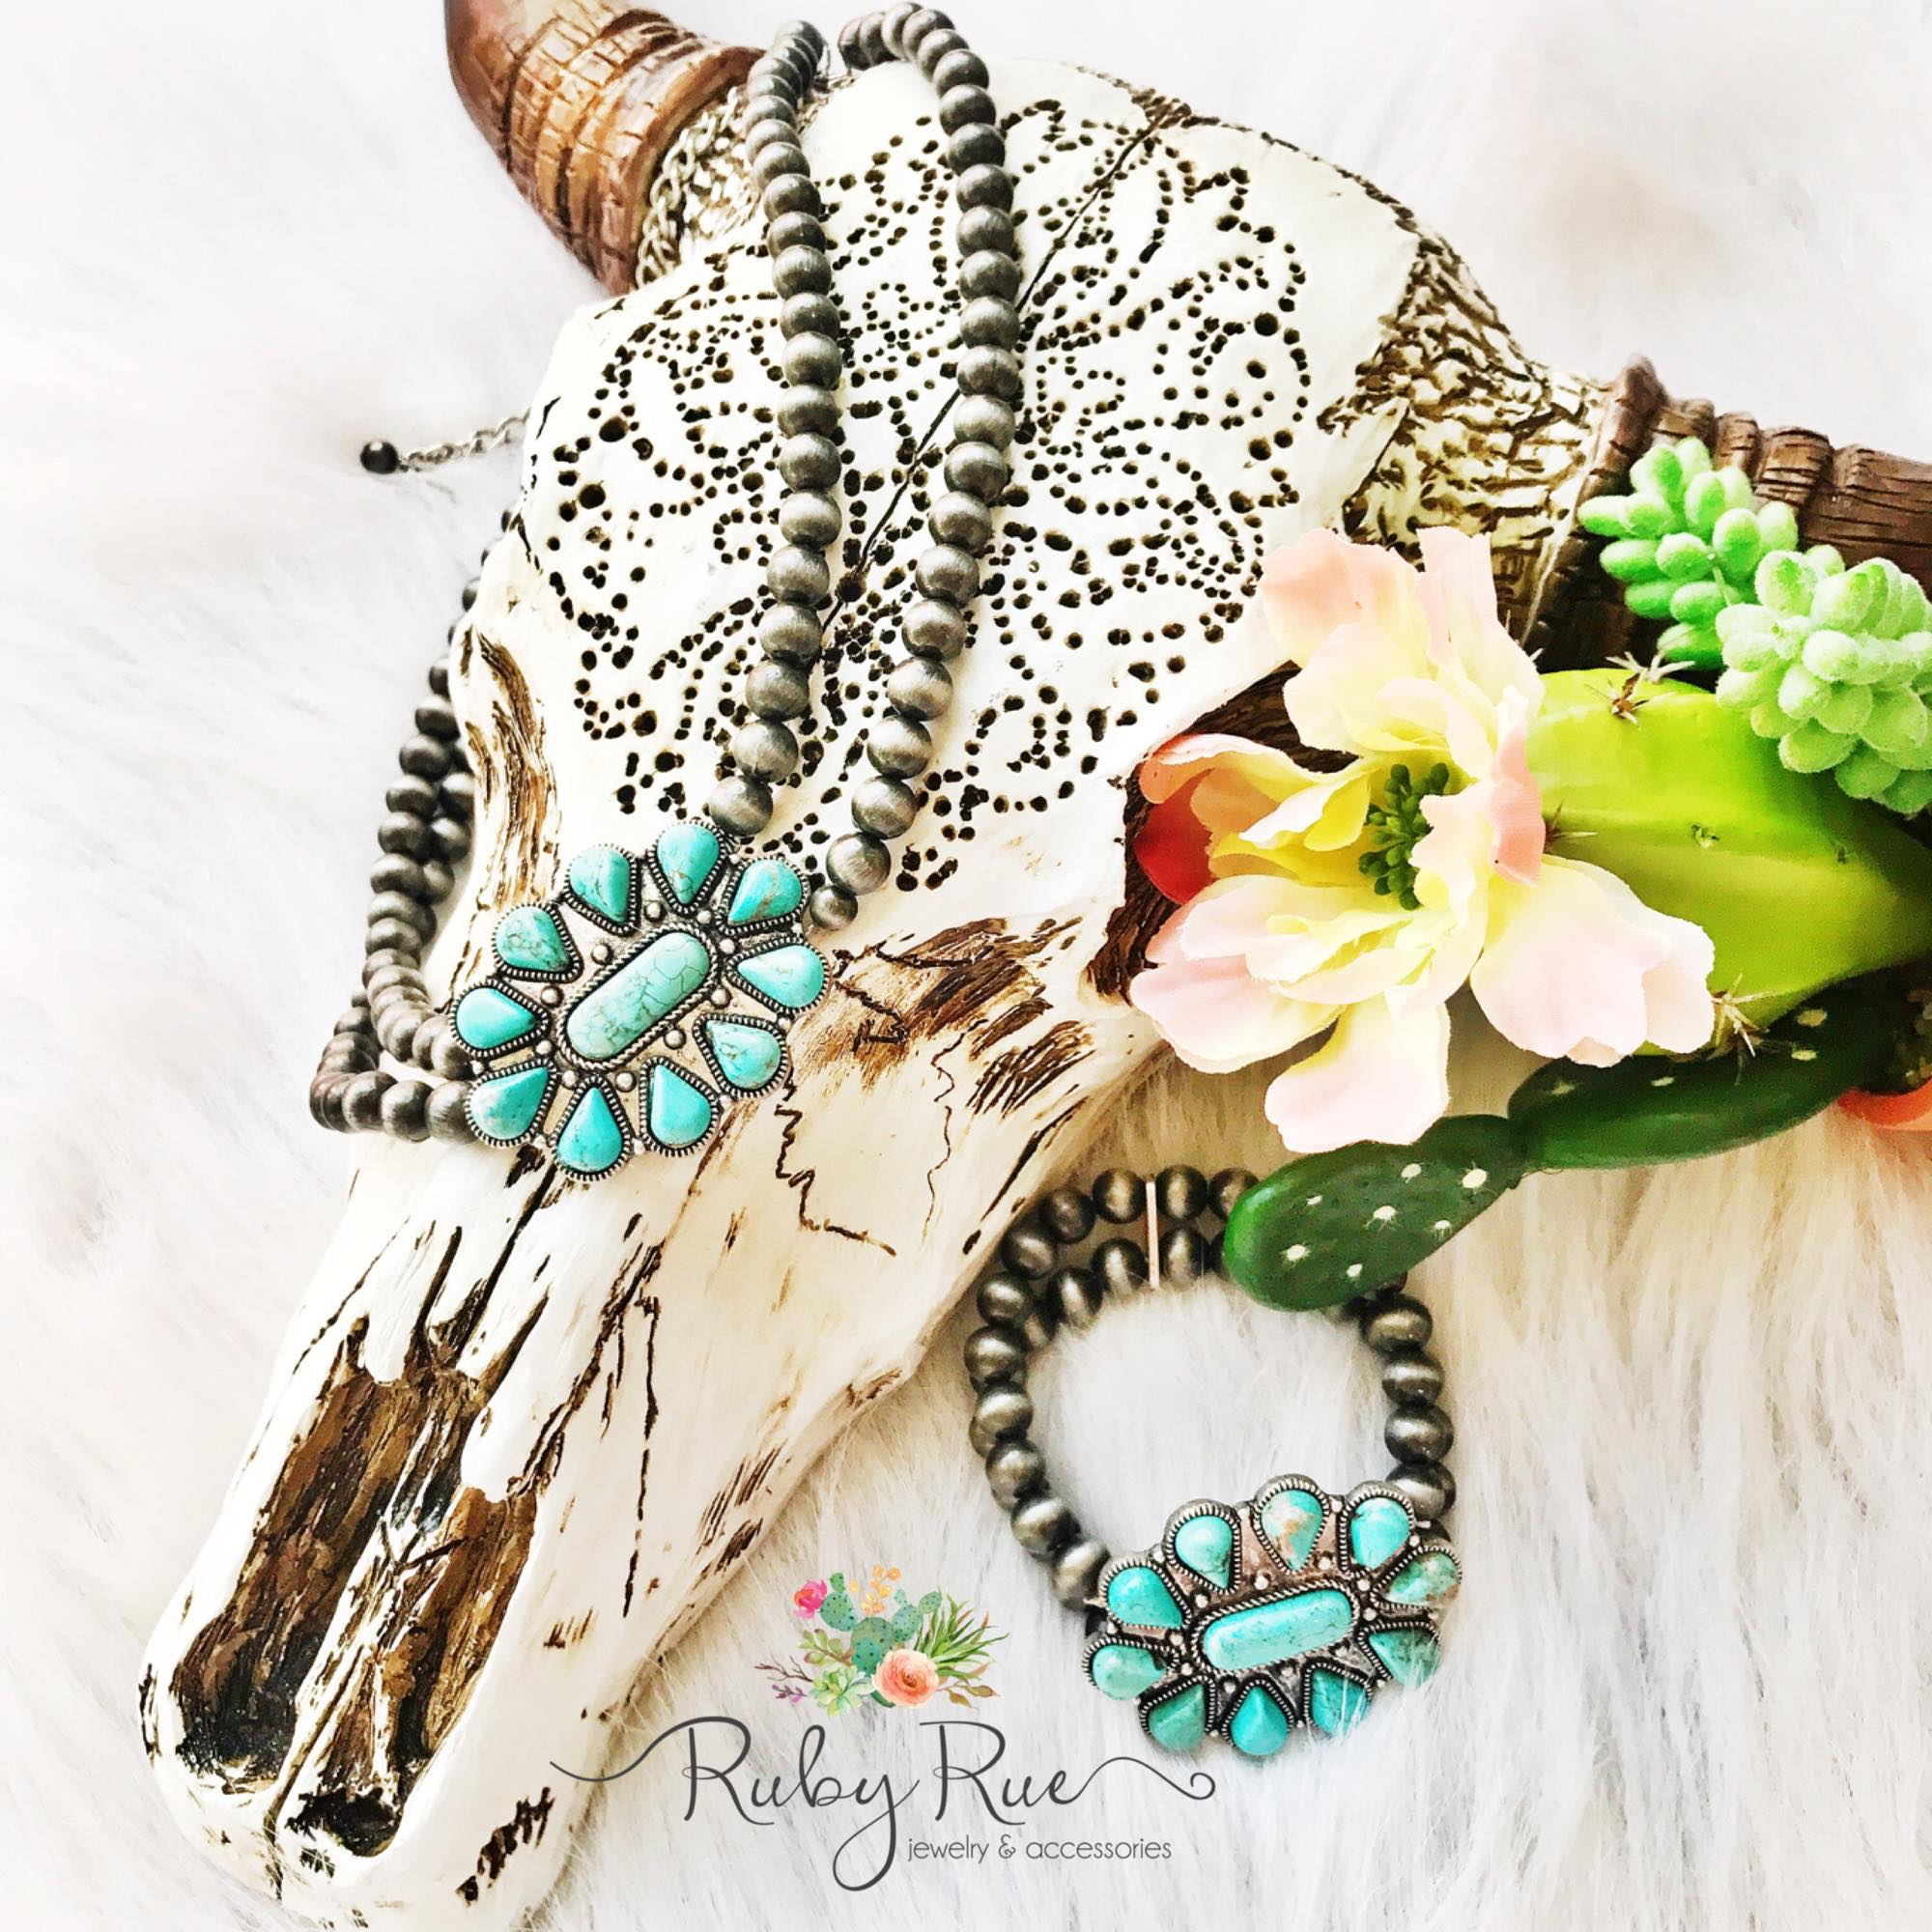 The Laynee Turquoise Bracelet - Ruby Rue Jewelry & Accessories